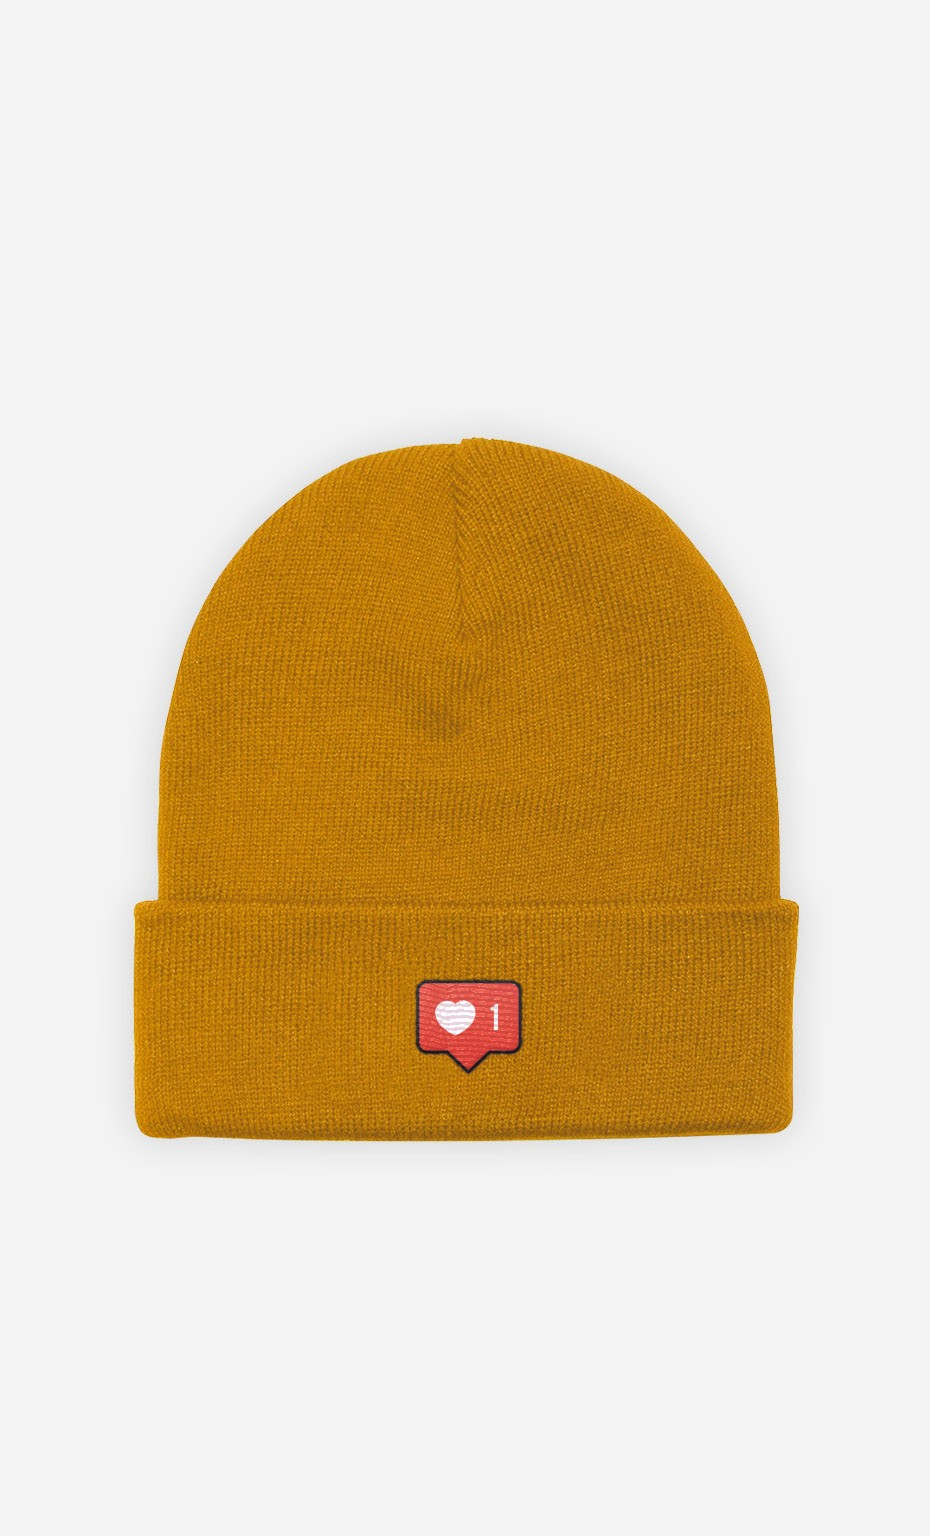 Beanie Instagram - embroidered